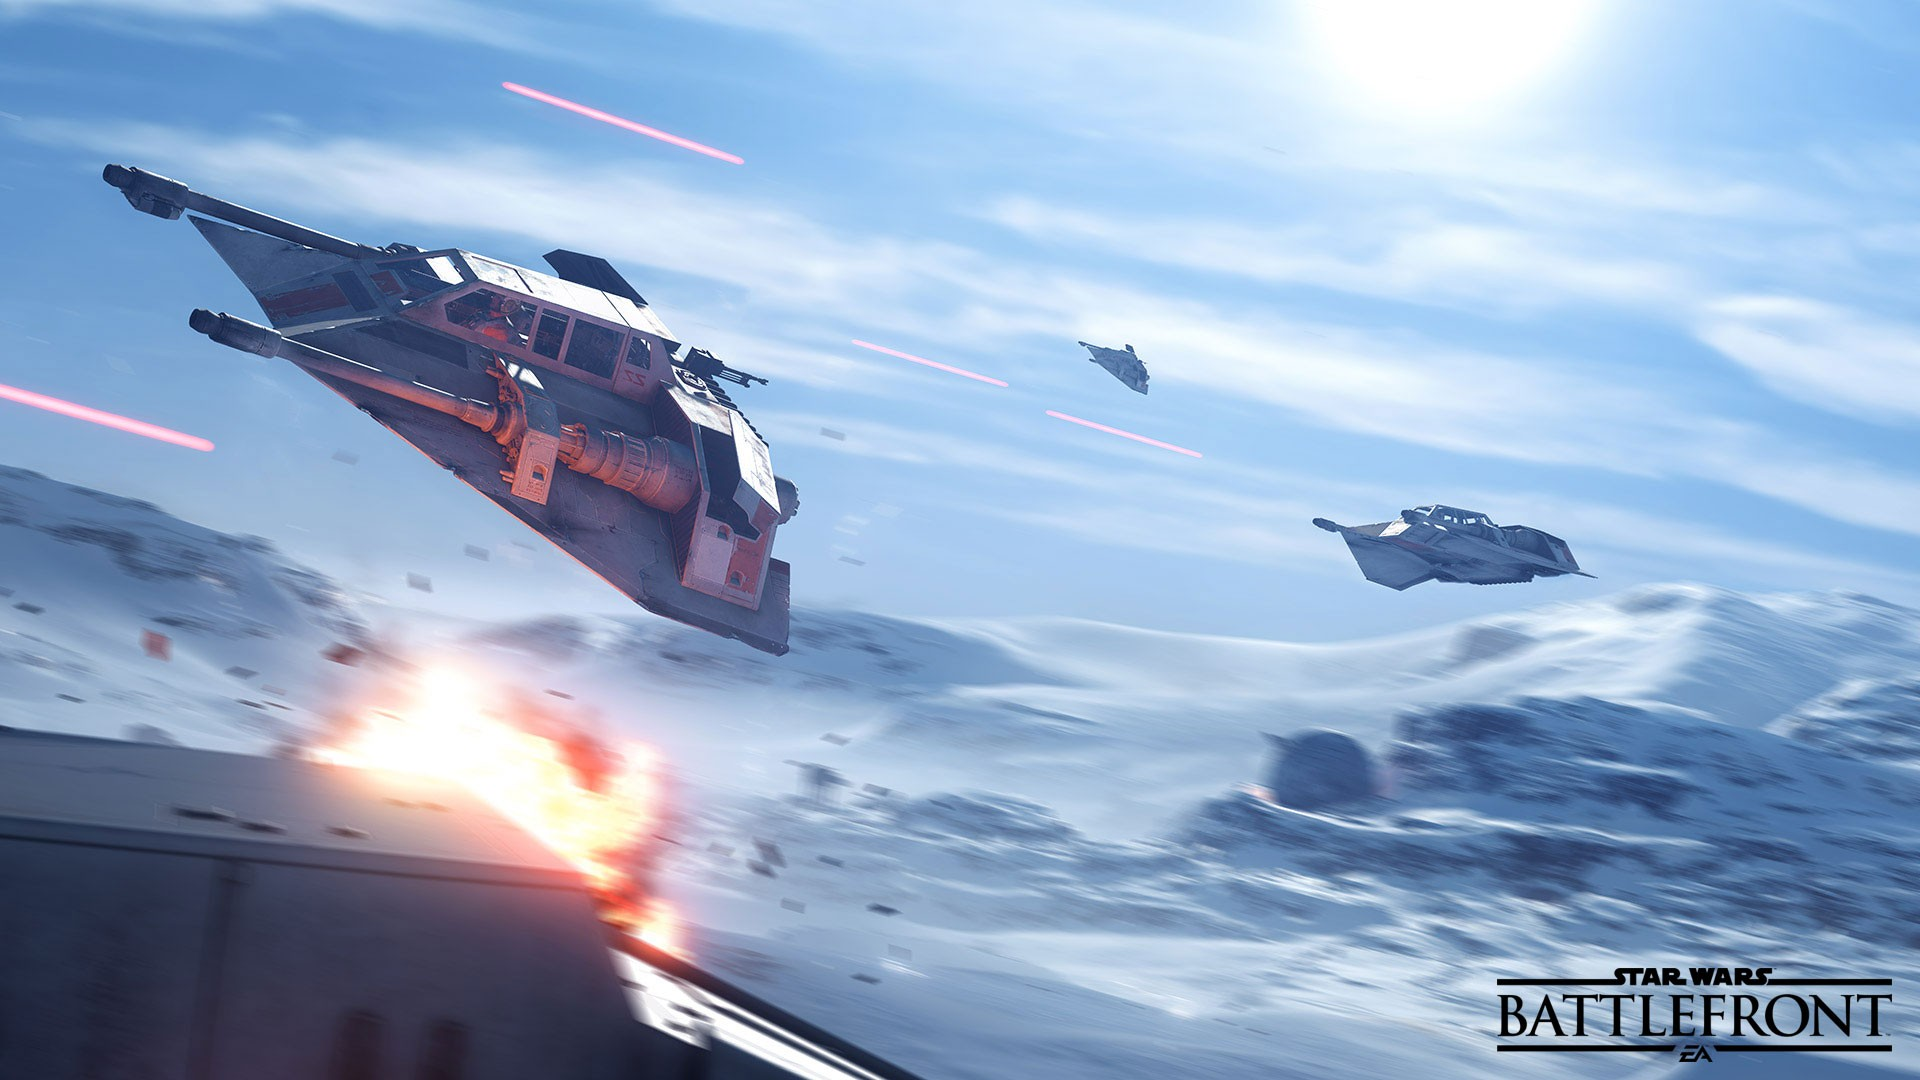 'Battlefront' Is for Star Wars Fans, Not 'Battlefield' Players